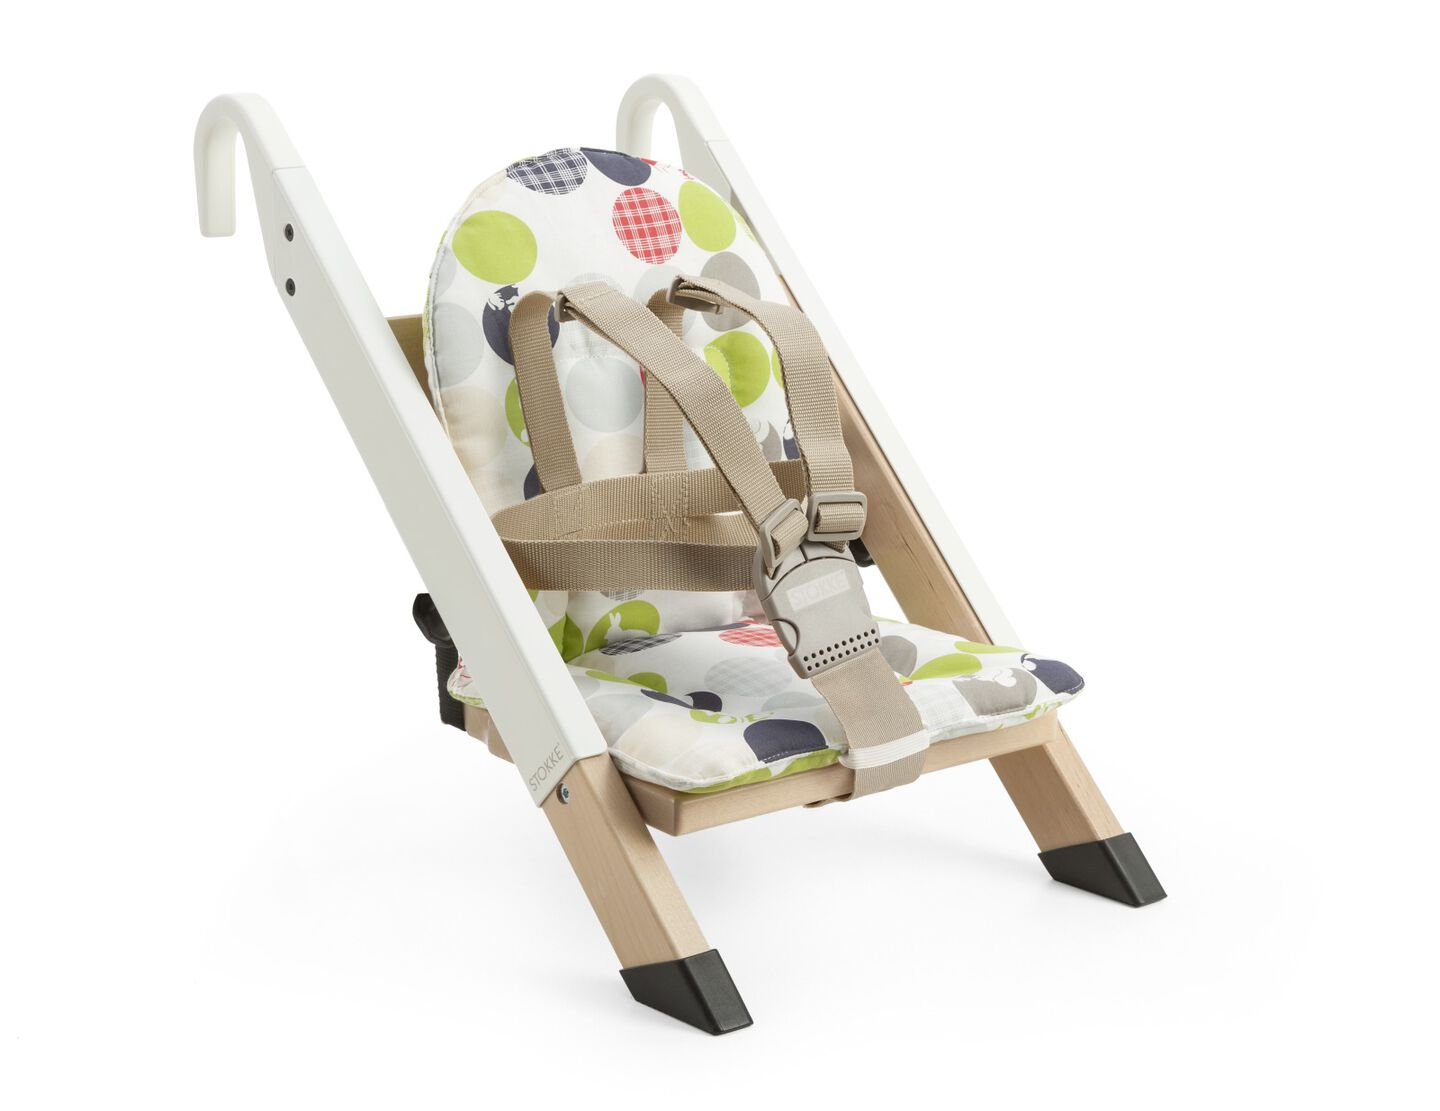 Portable child seat, White, accessorised with Silhouette Green cushion.